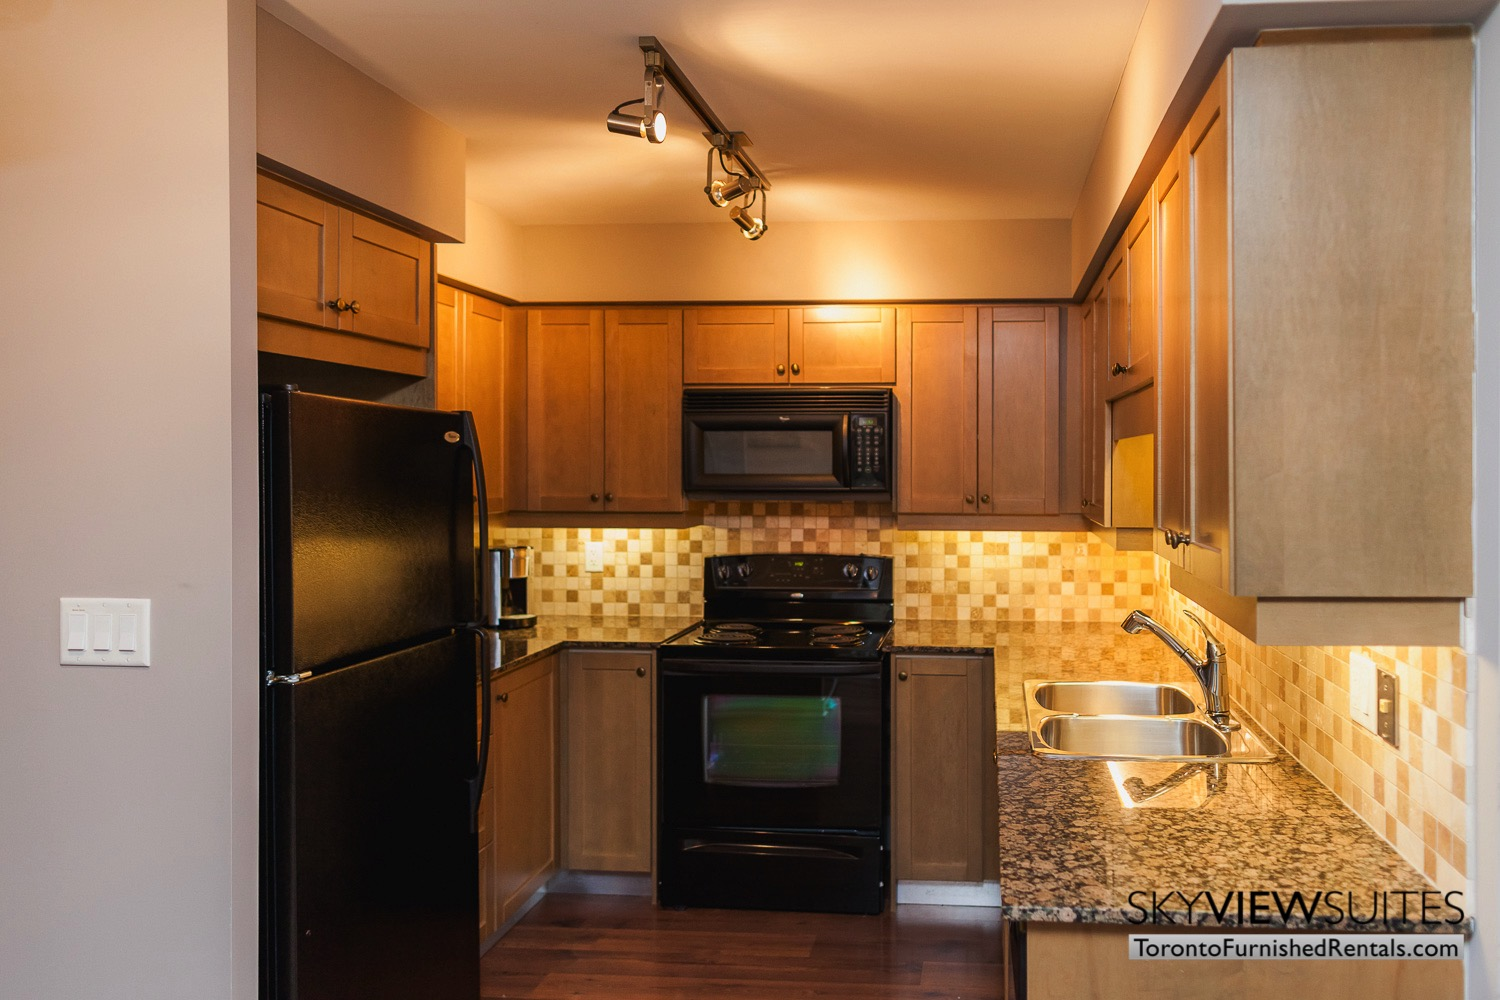 kitchen inside element condo unit